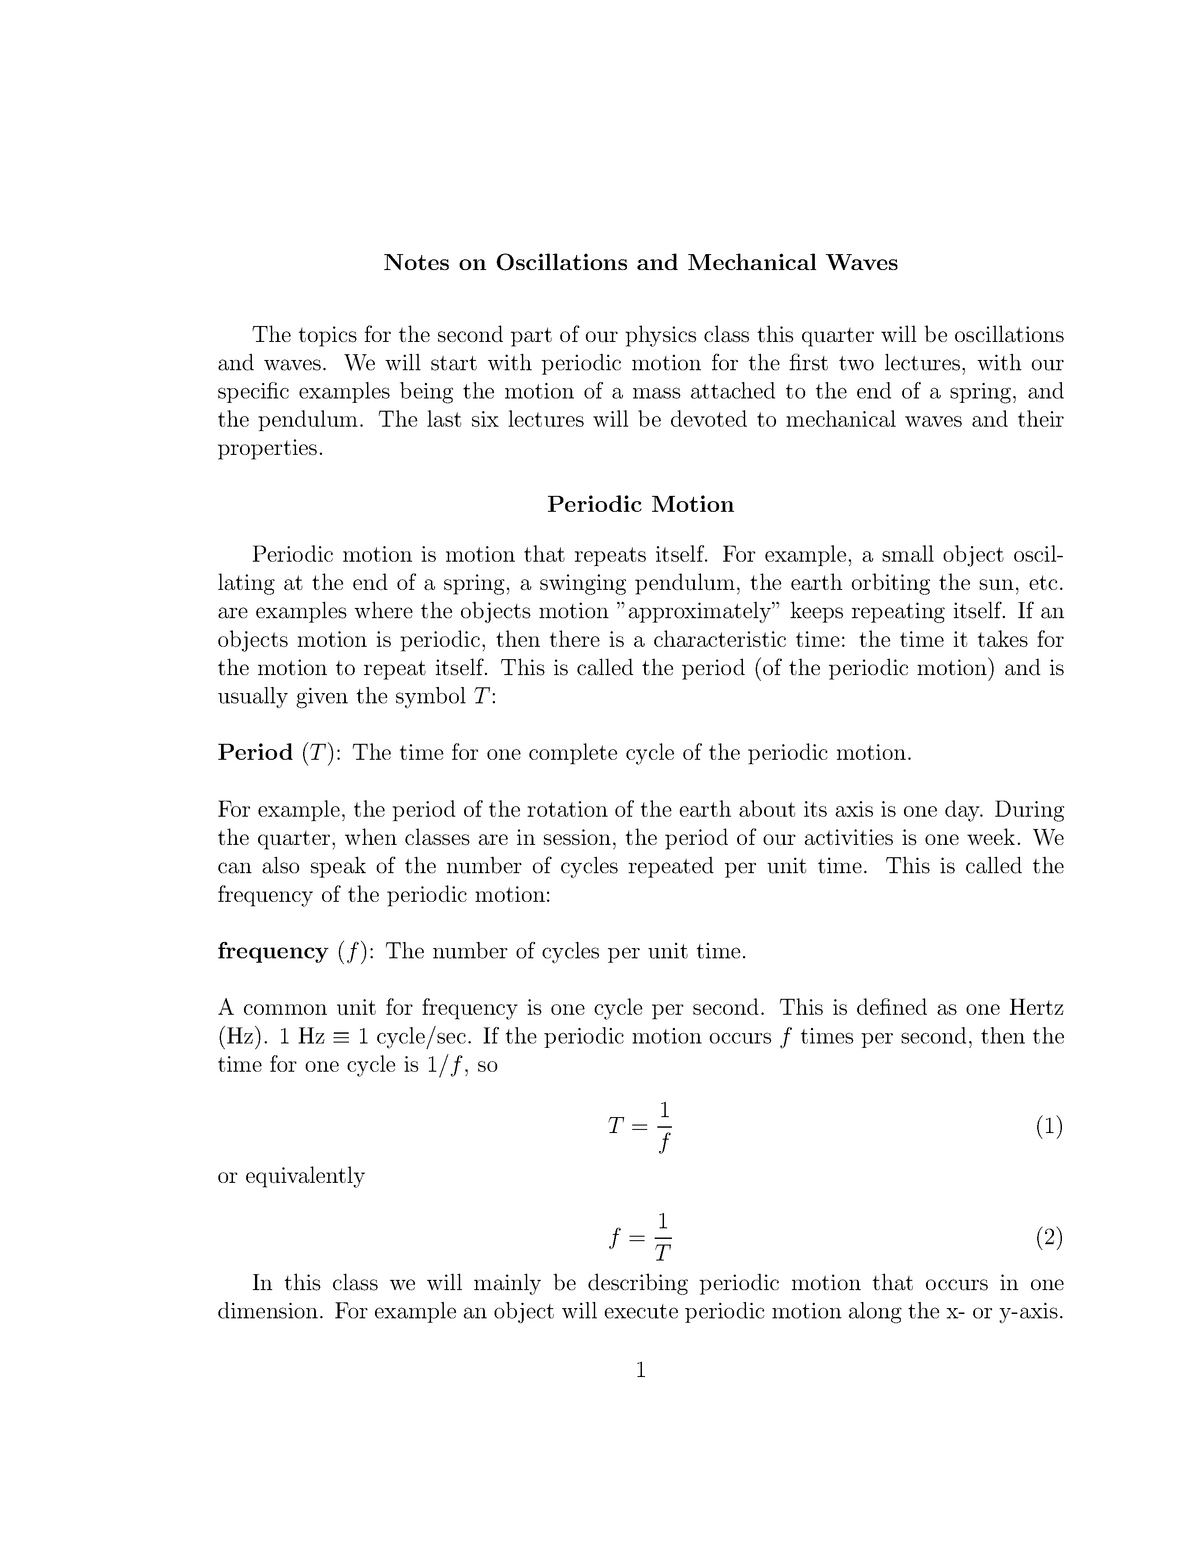 Lecture notes, lecture on Periodic Motion - Notes on